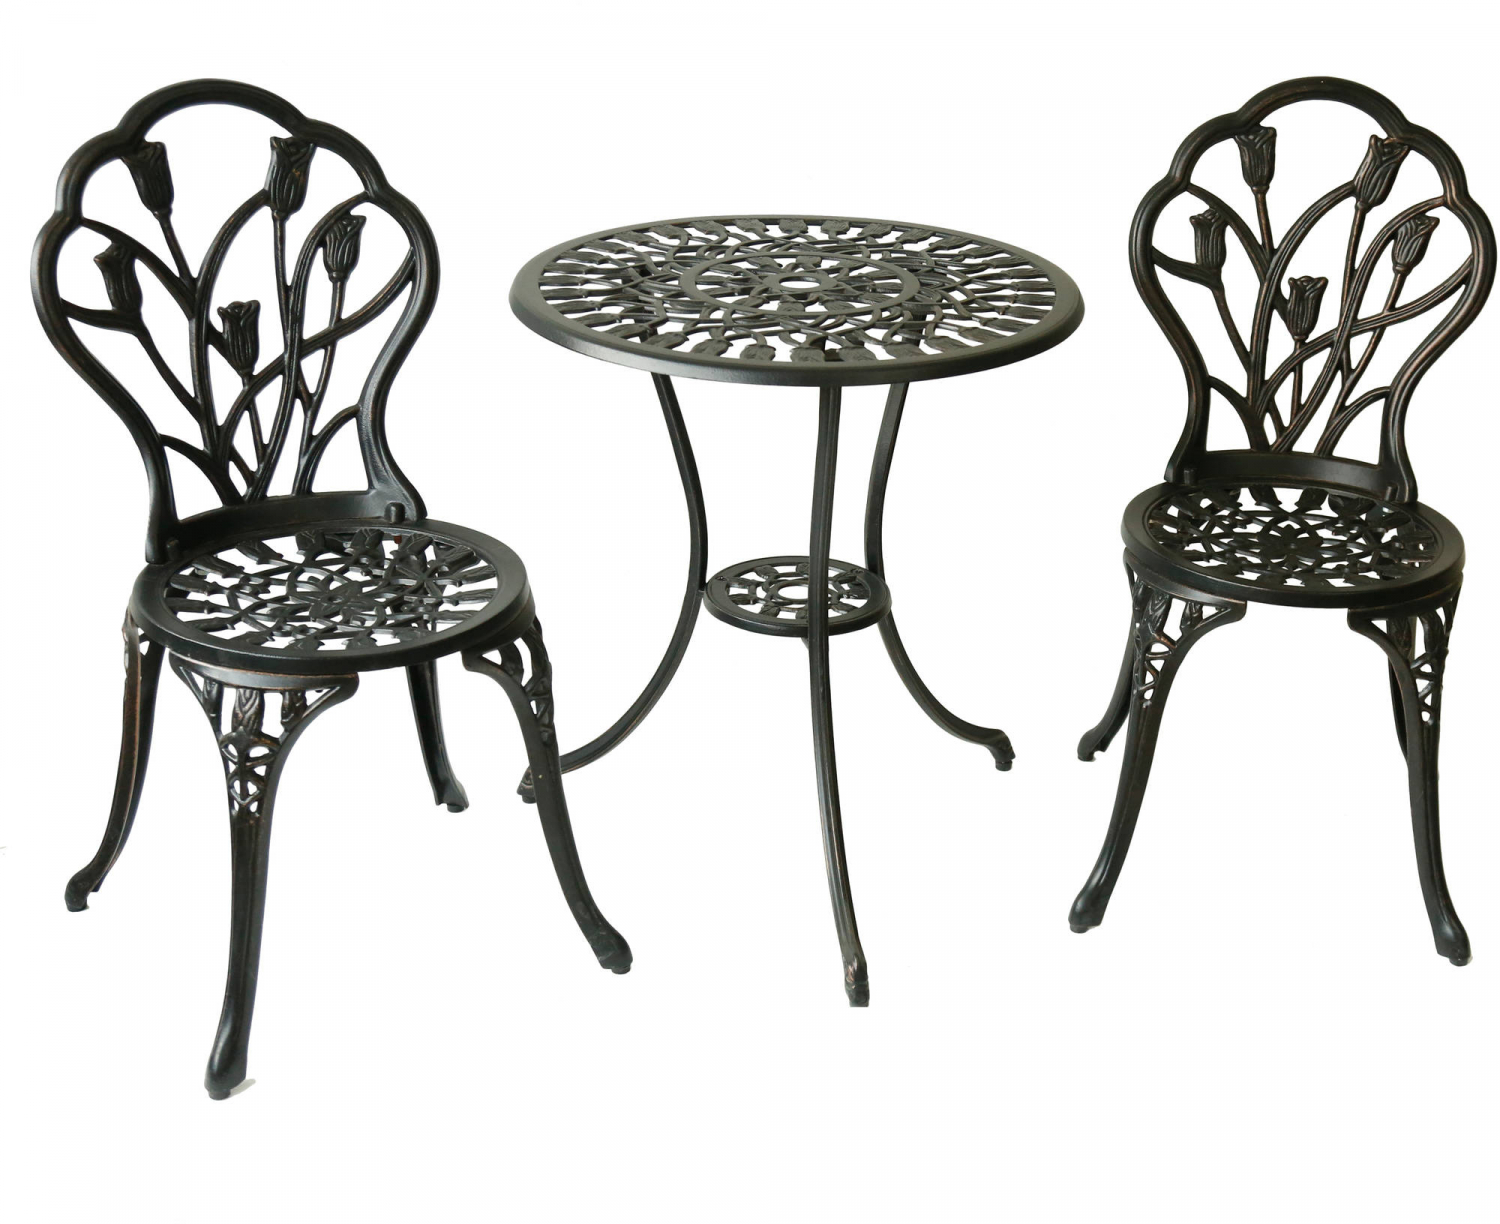 Wrought Iron Patio Set Bistro Table And Chairs 3 Pieces Outdoor